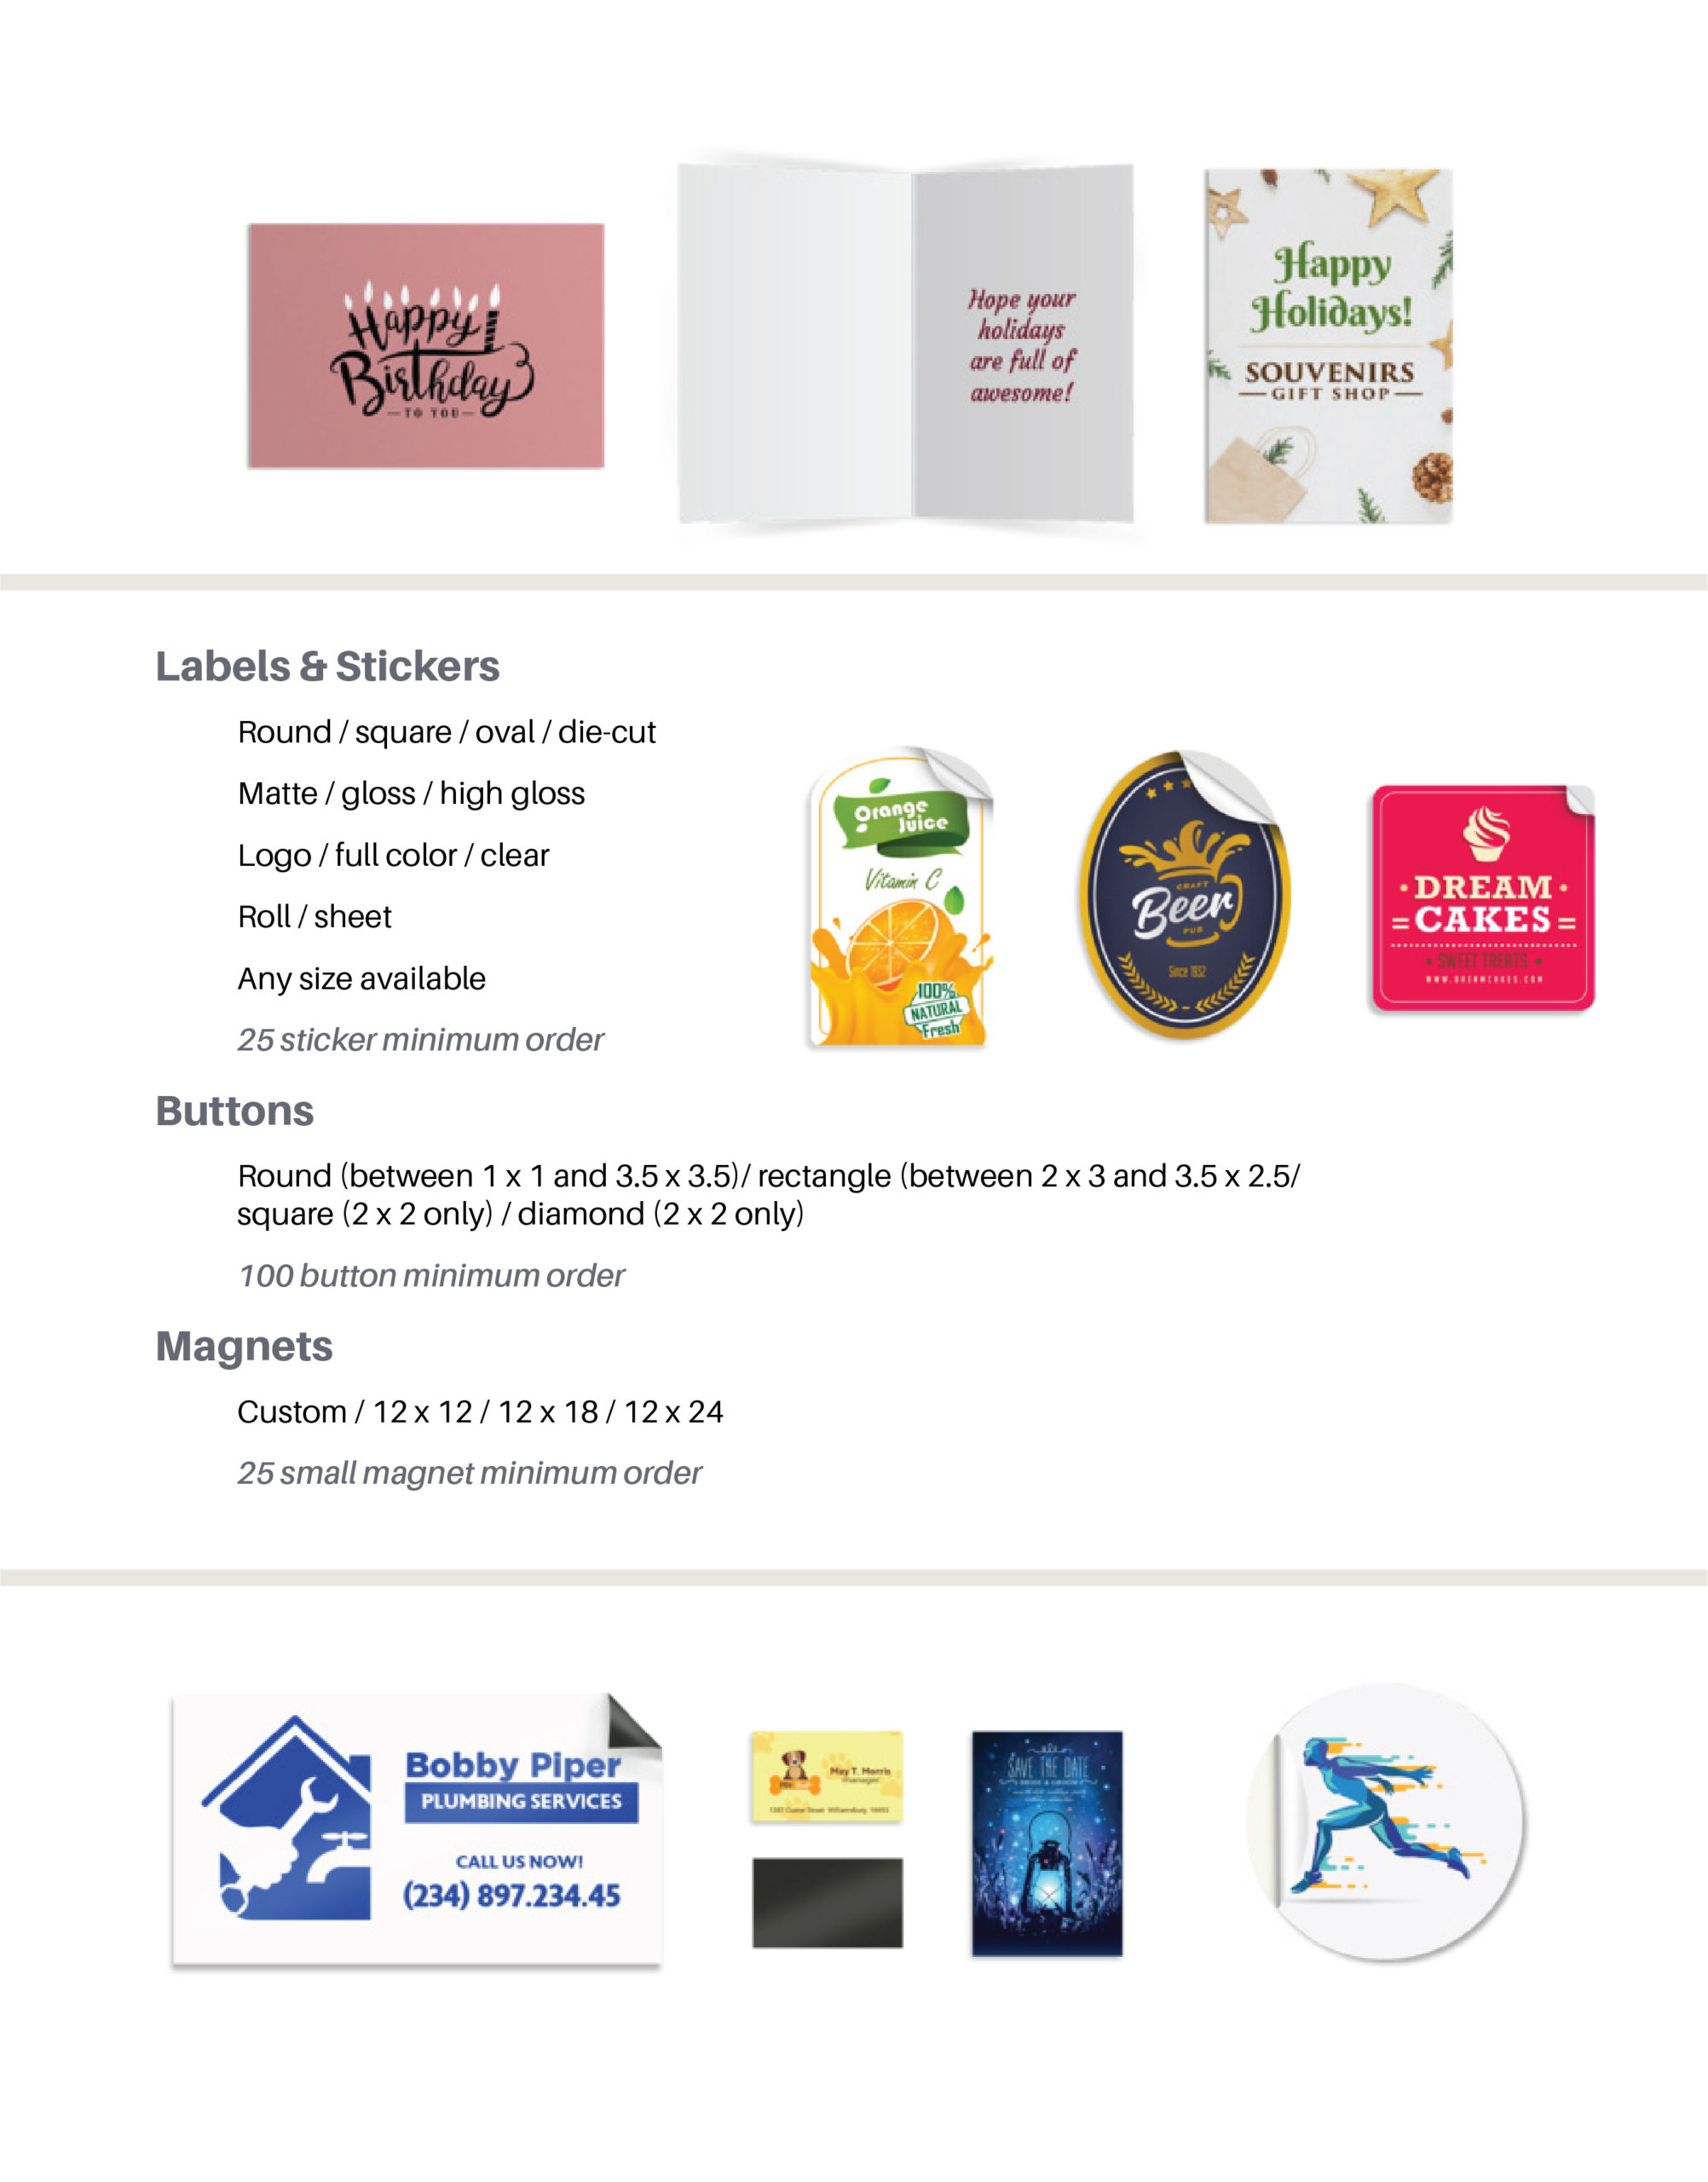 Page featuring product details on: Labels and stickers, buttons, and magnets